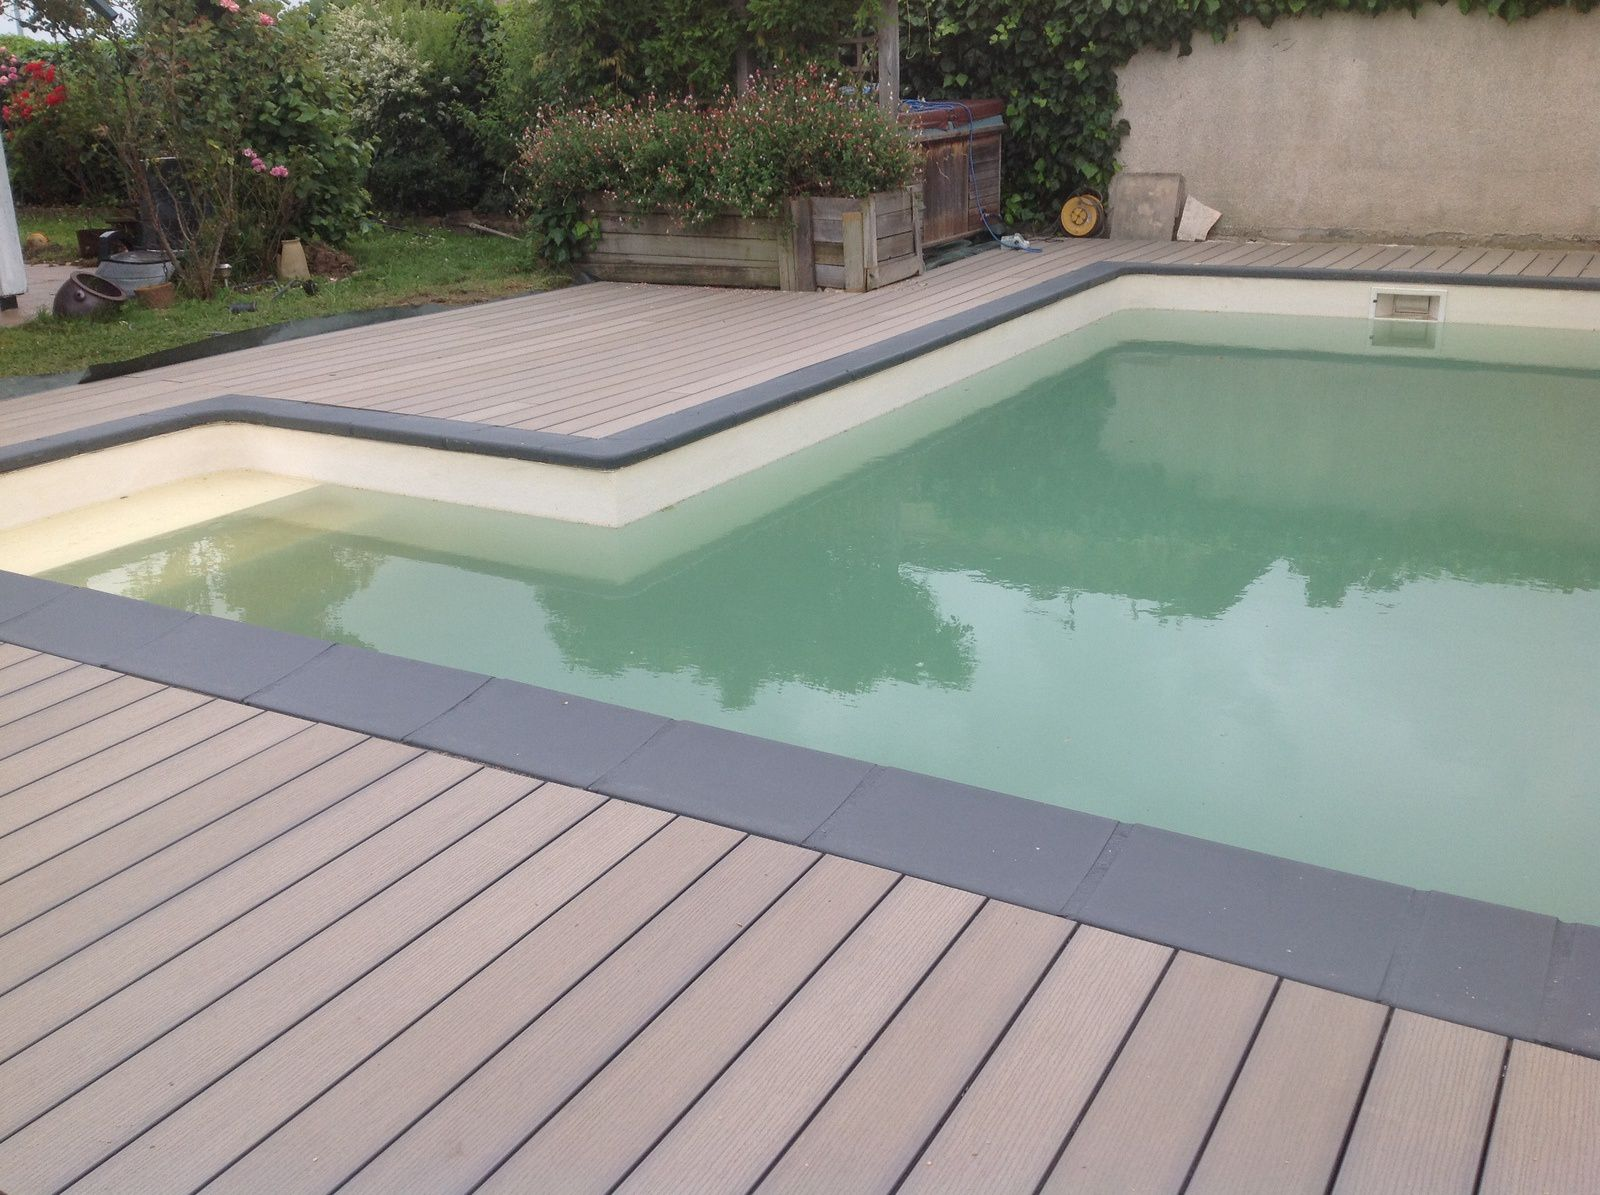 TERRASSES COMPOSITES = QUELQUES CREATIONS 2016 Le blog de atpv infos over blog com # Margelle Piscine Bois Composite